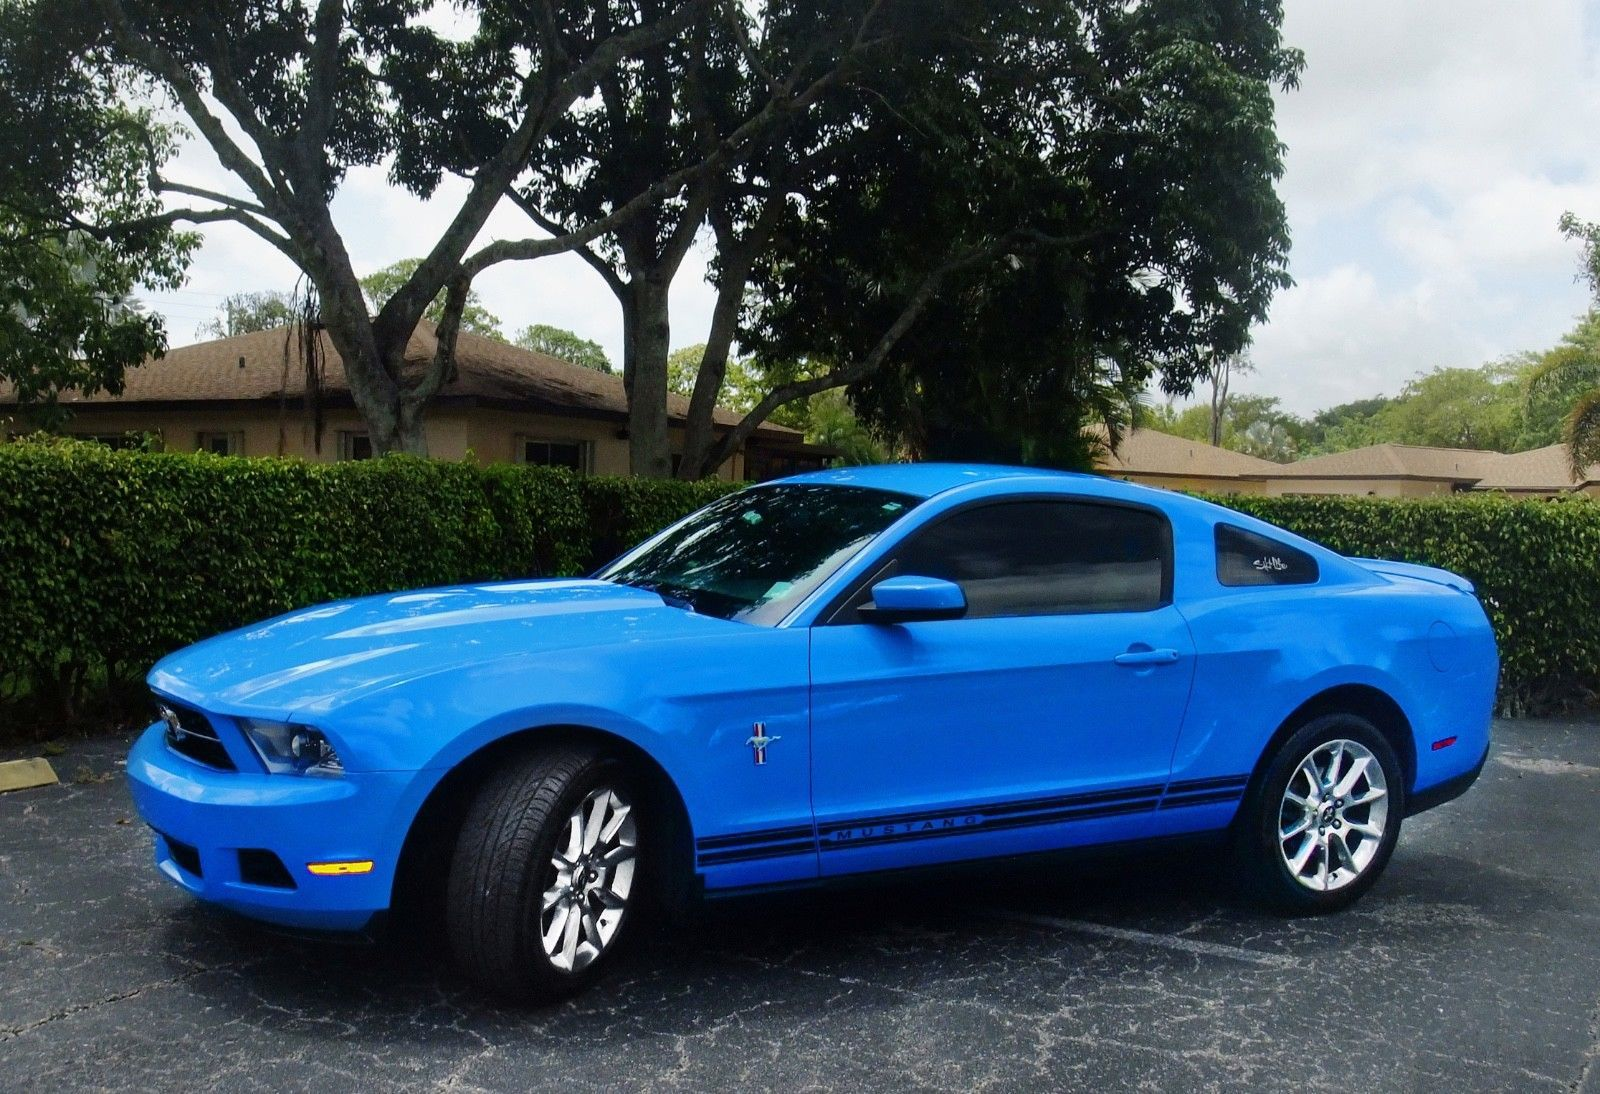 2010 Ford Mustang V6 Premium 2010 Ford Mustang Blue Mustang